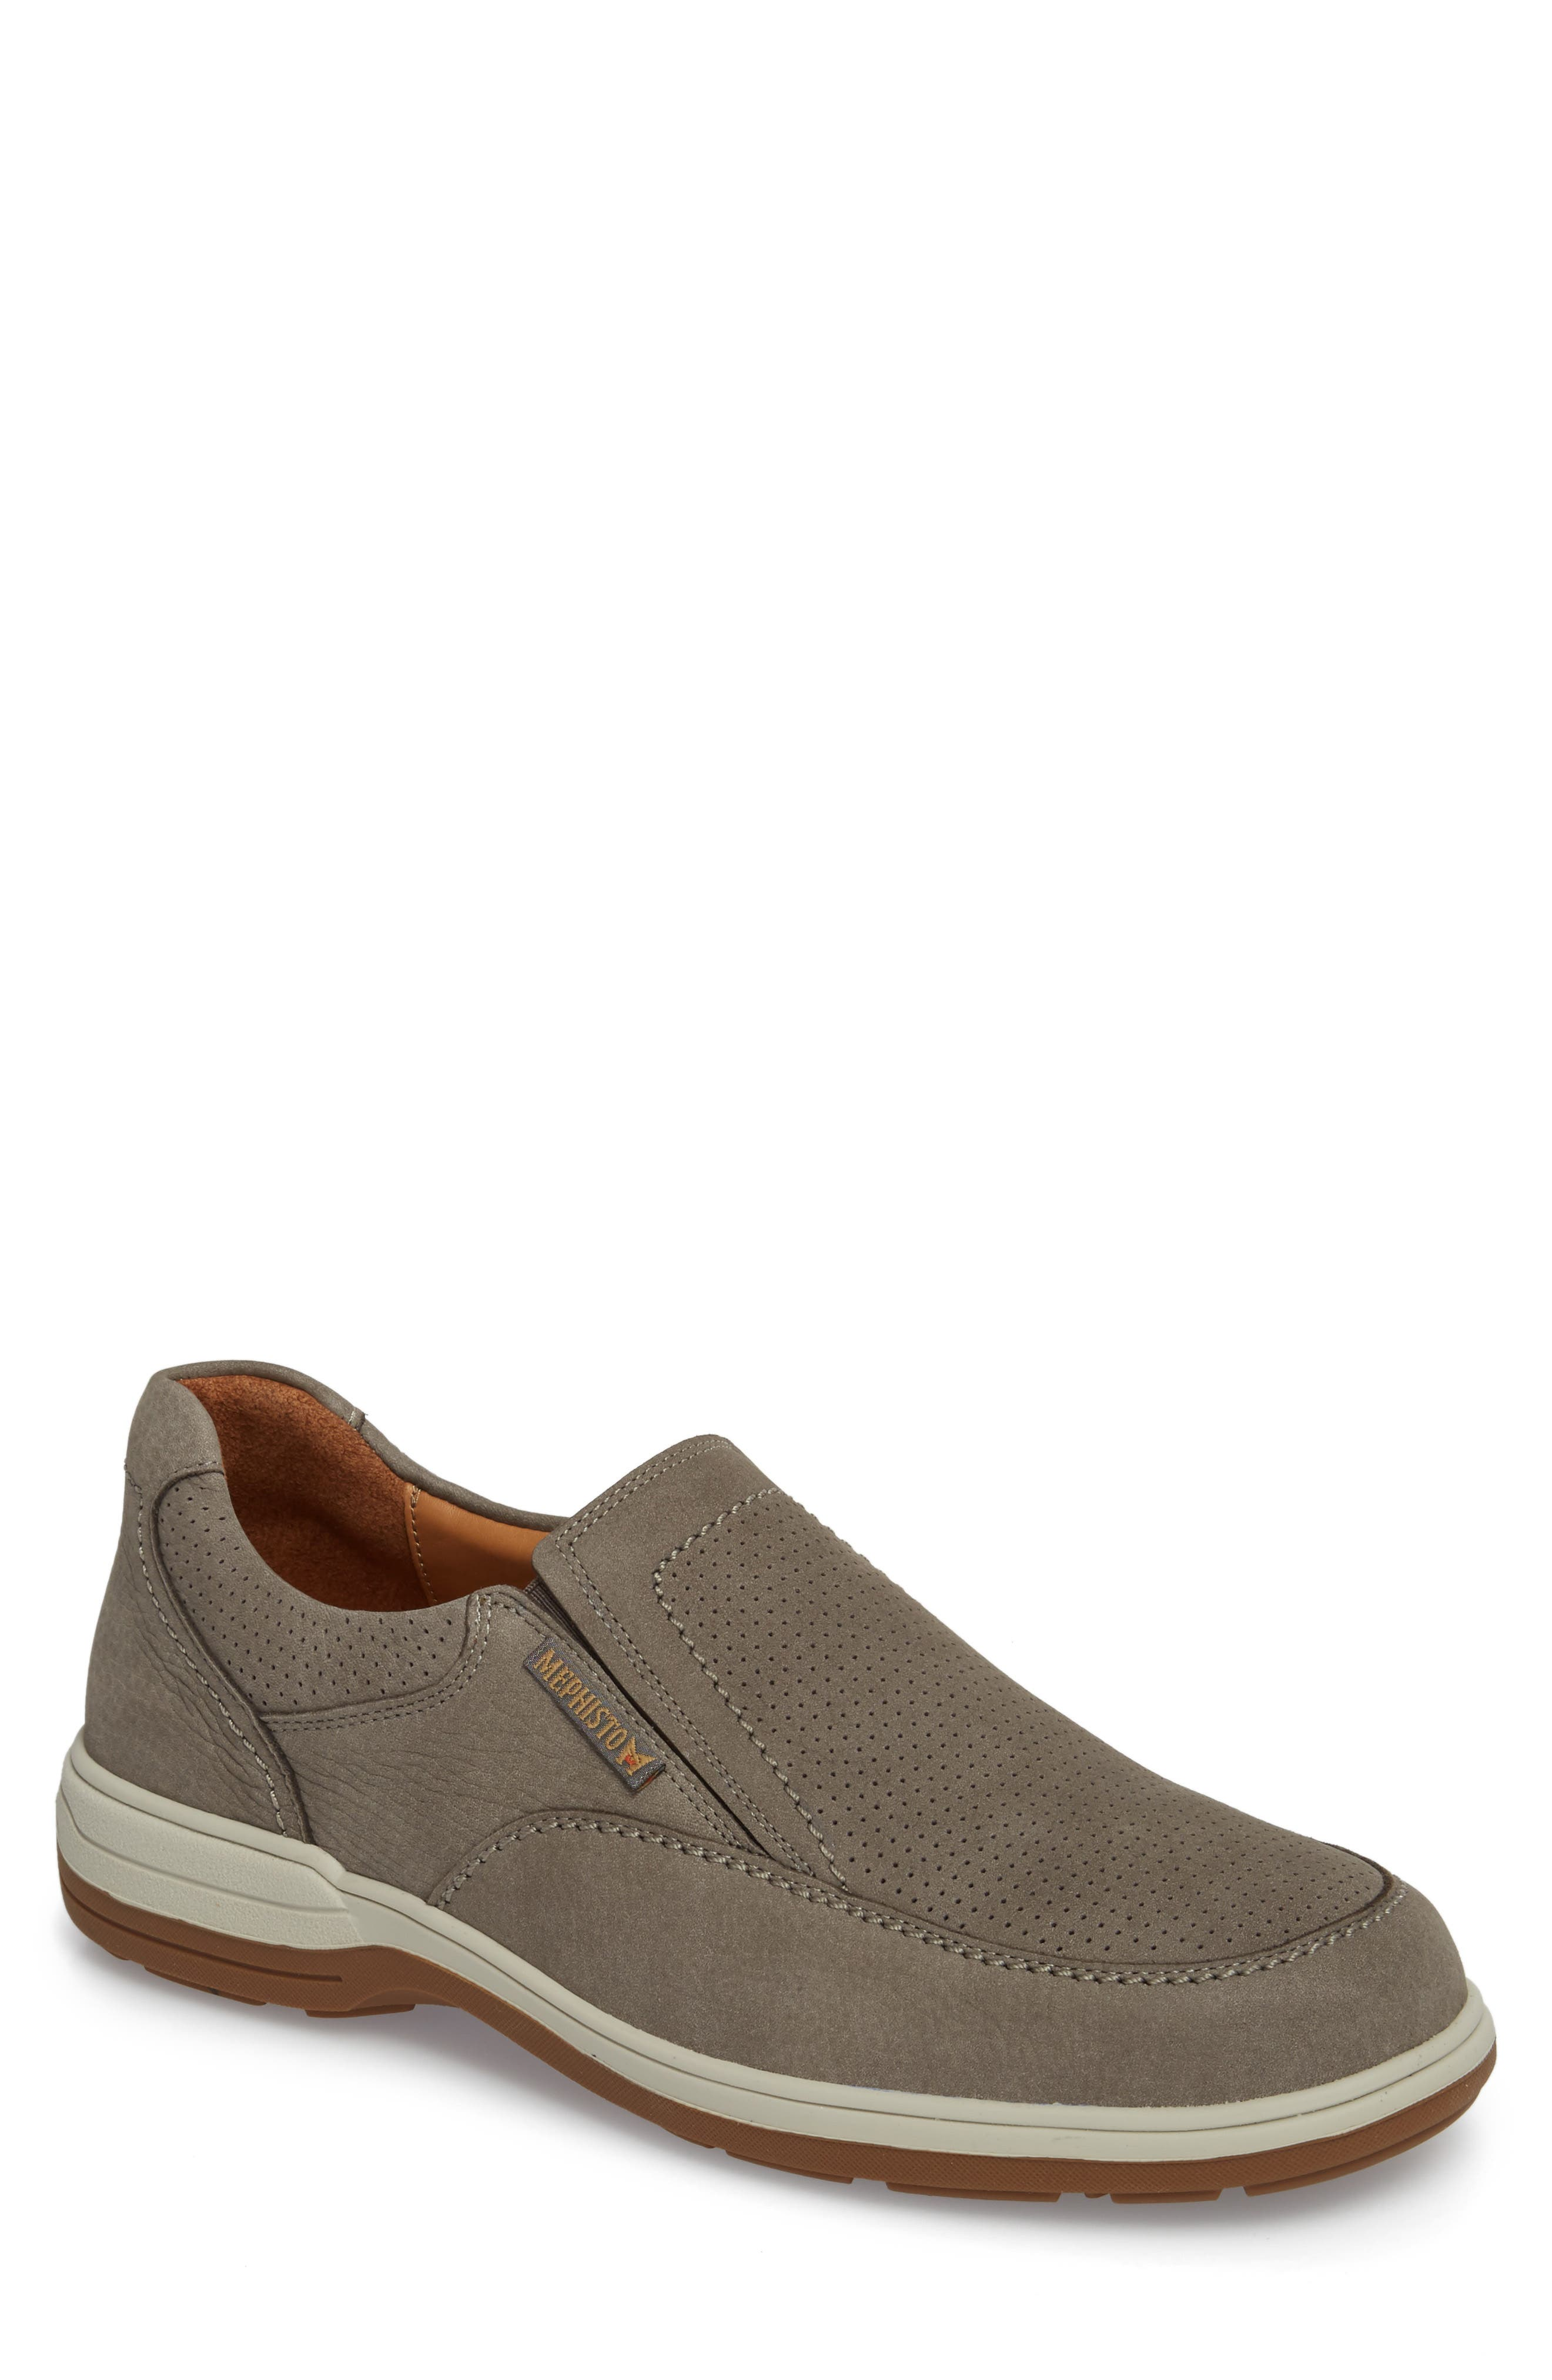 Davy Perforated Slip-On Sneaker,                             Main thumbnail 1, color,                             Grey